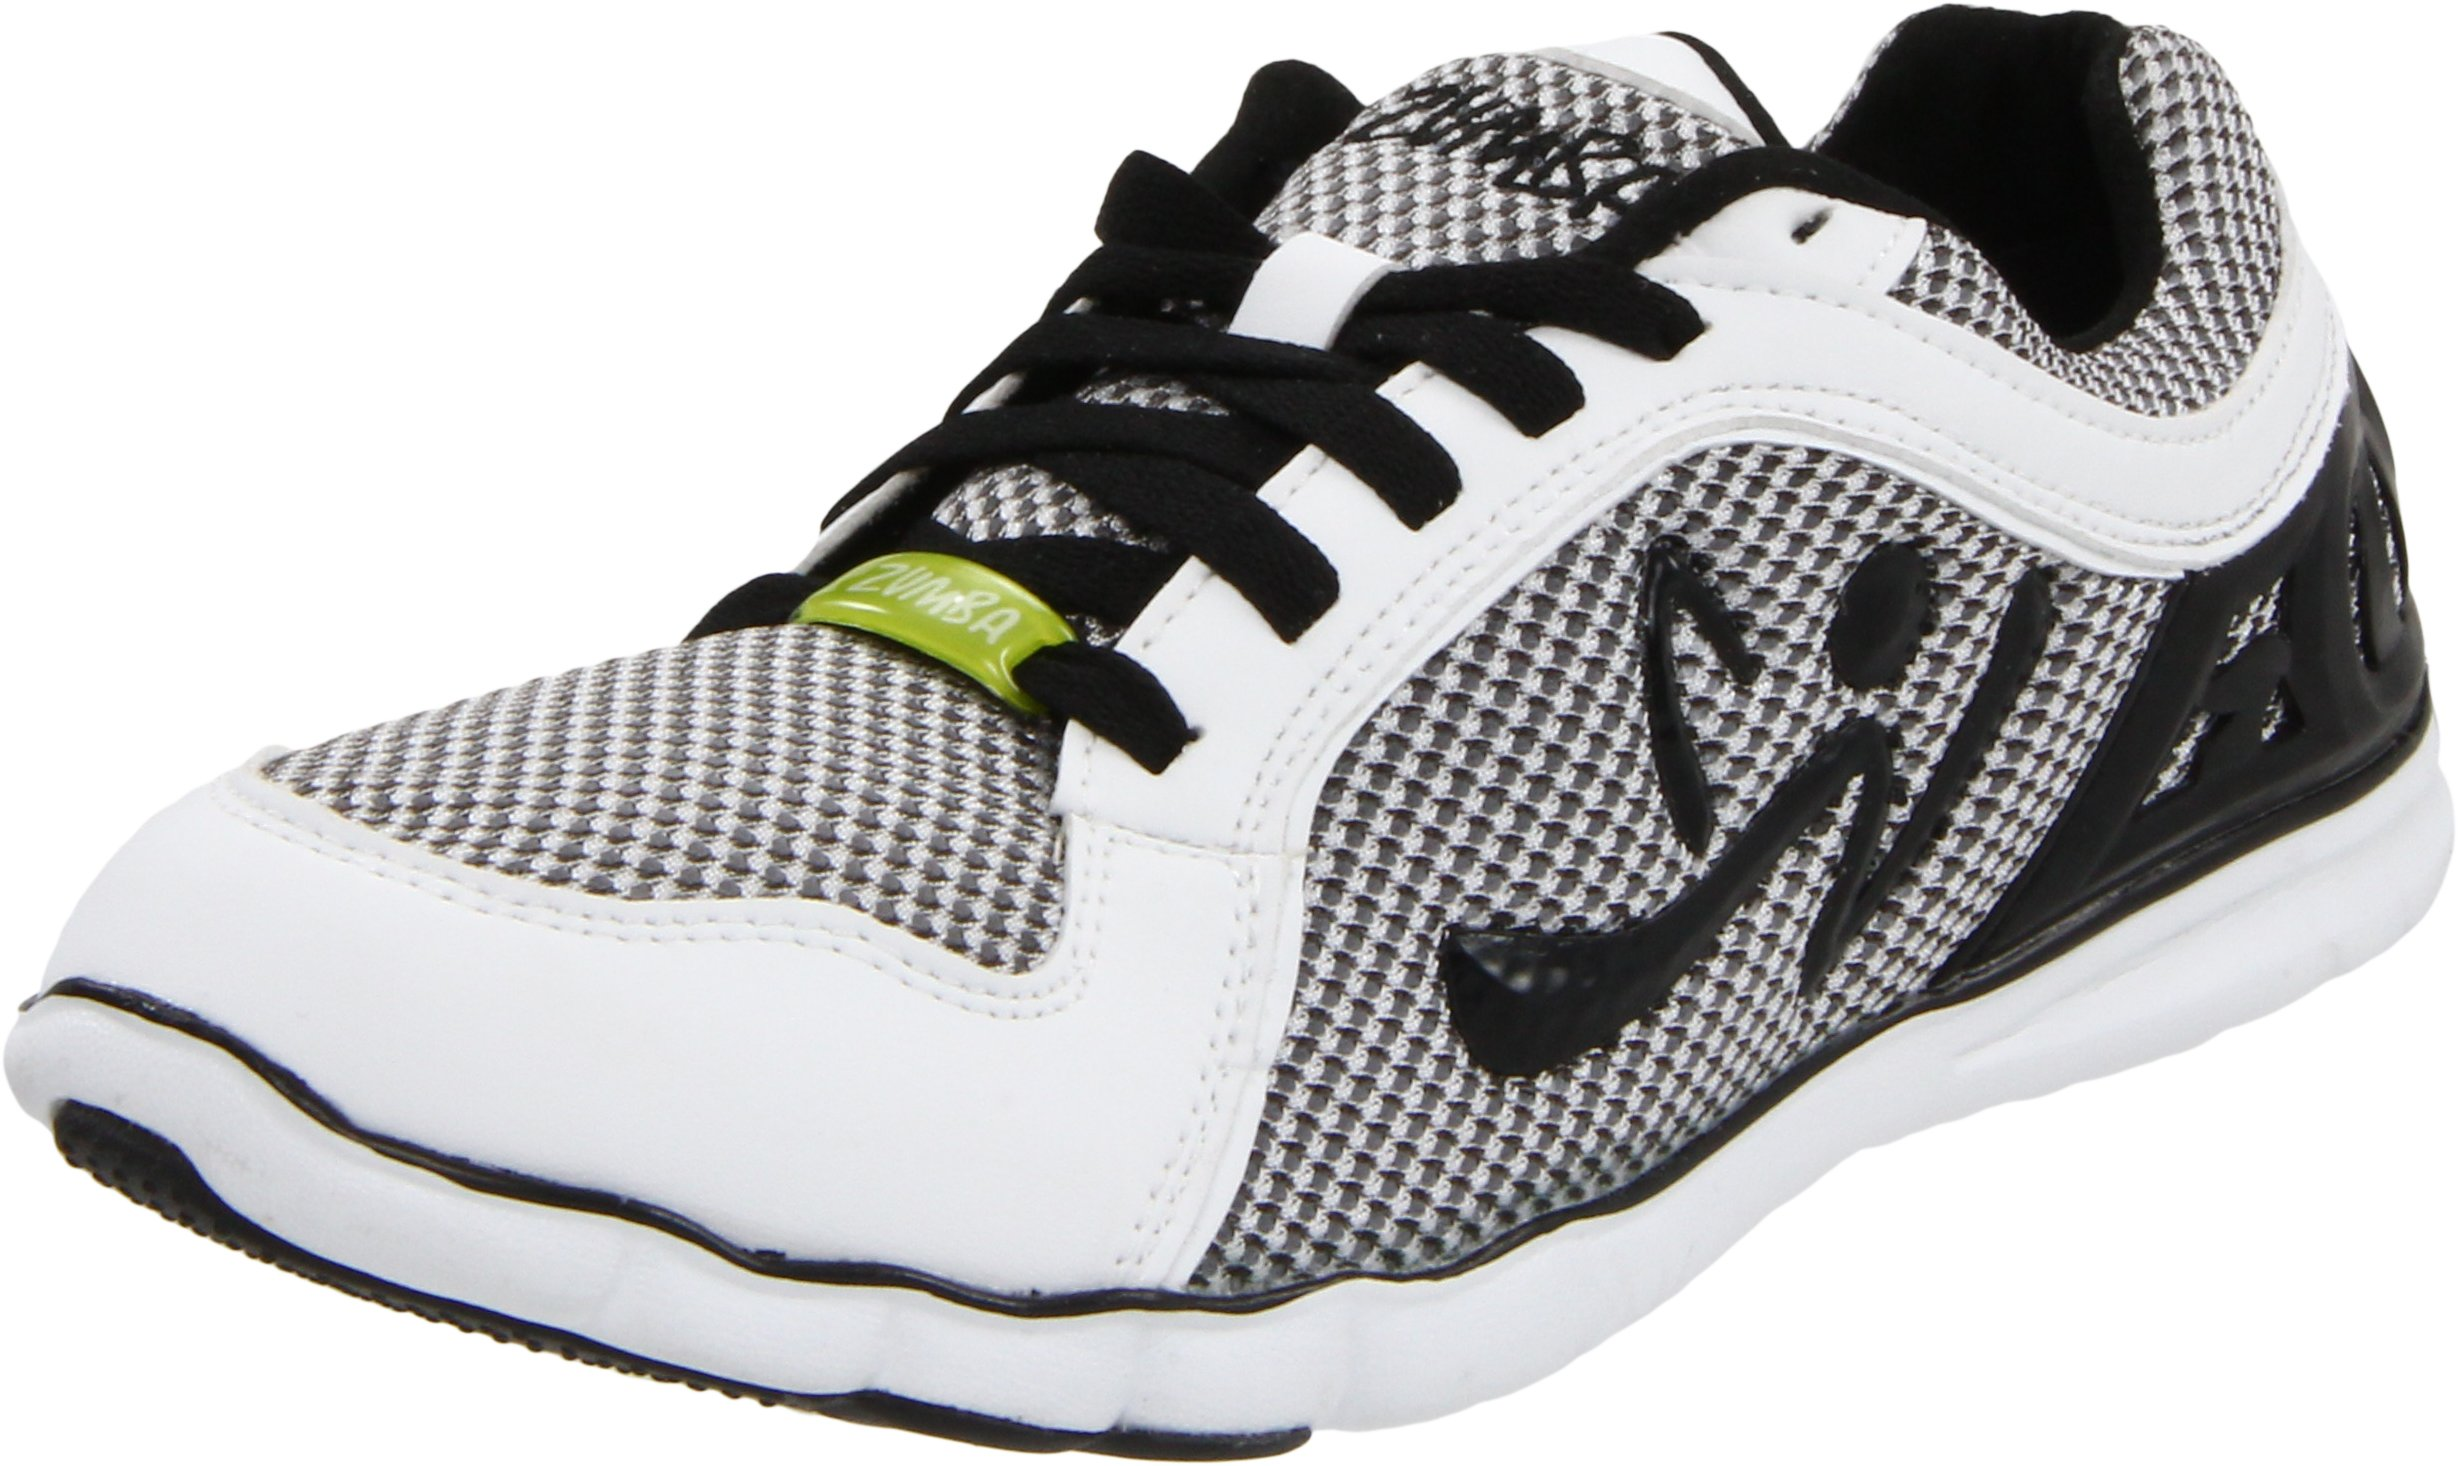 Zumba Women's Z1 Dance Shoe